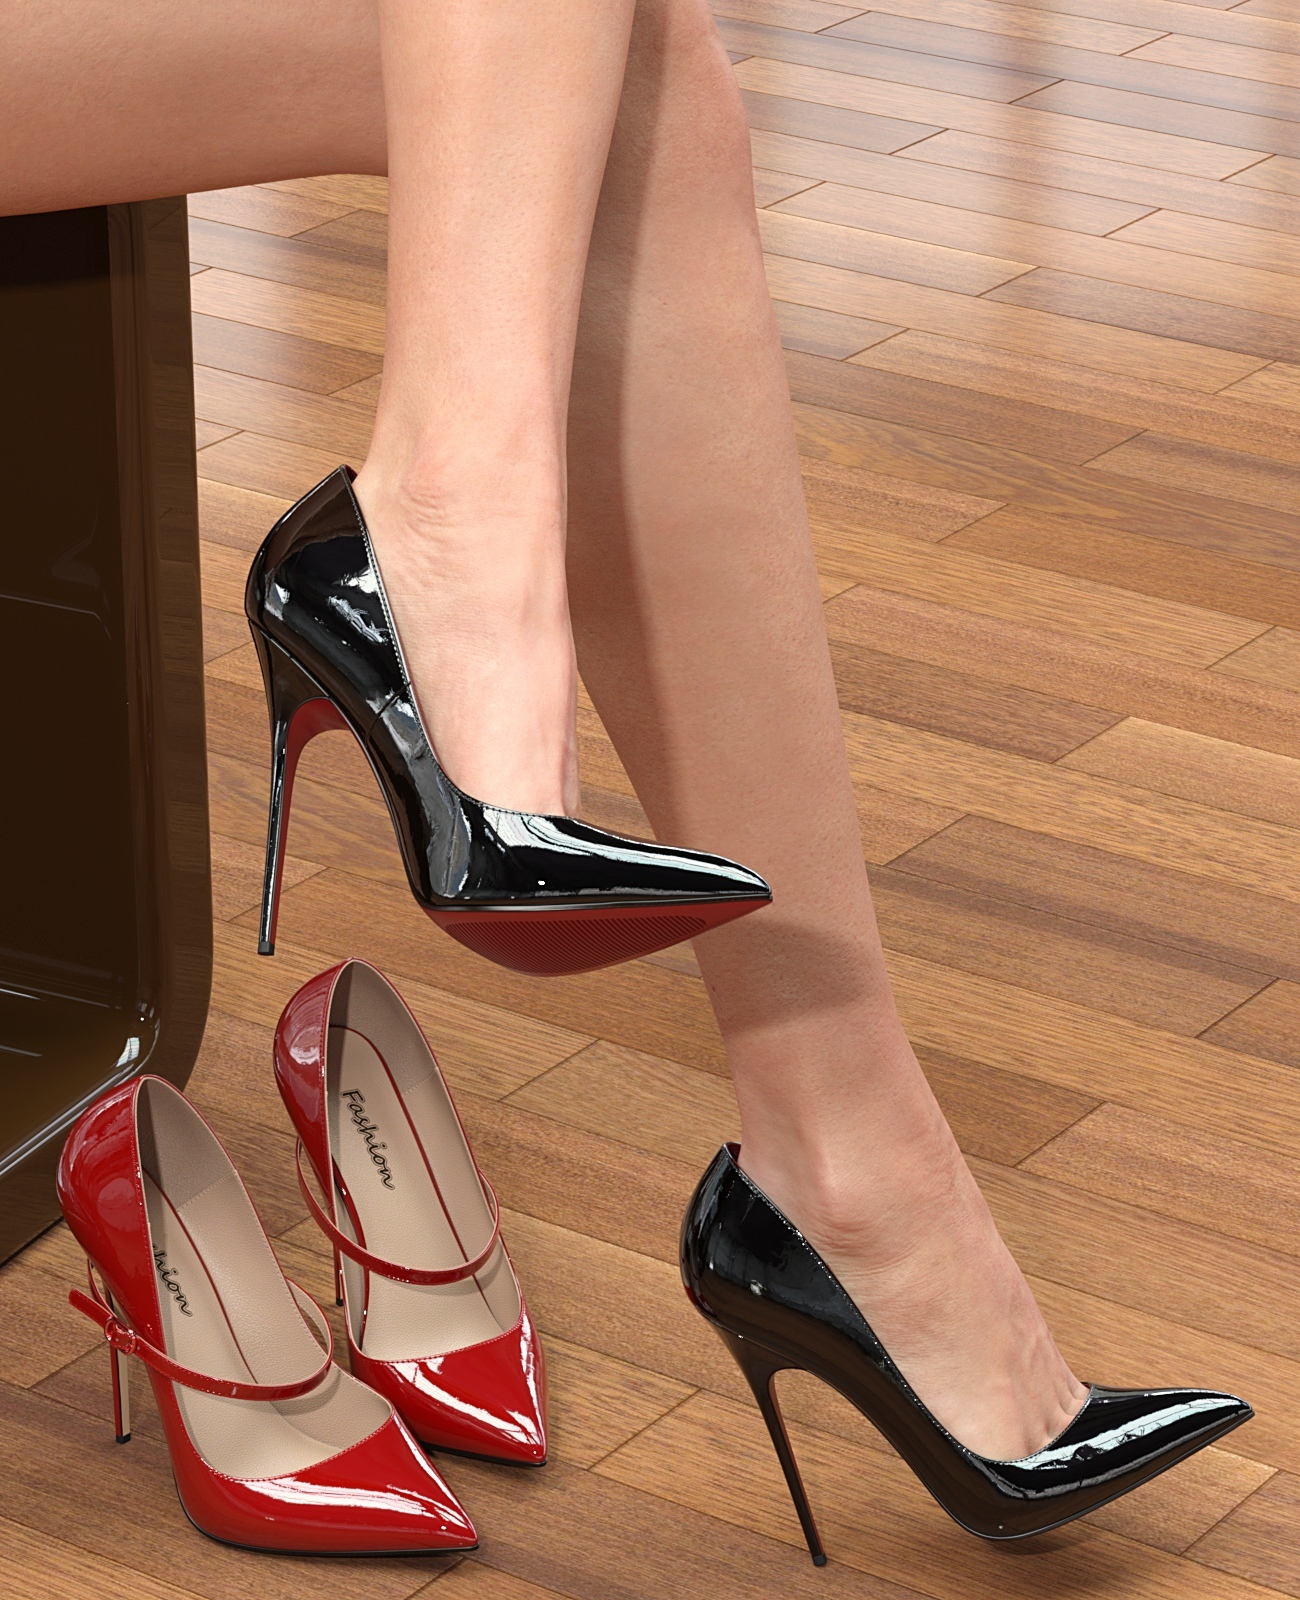 Spike Heel Pumps For G8F by idler168